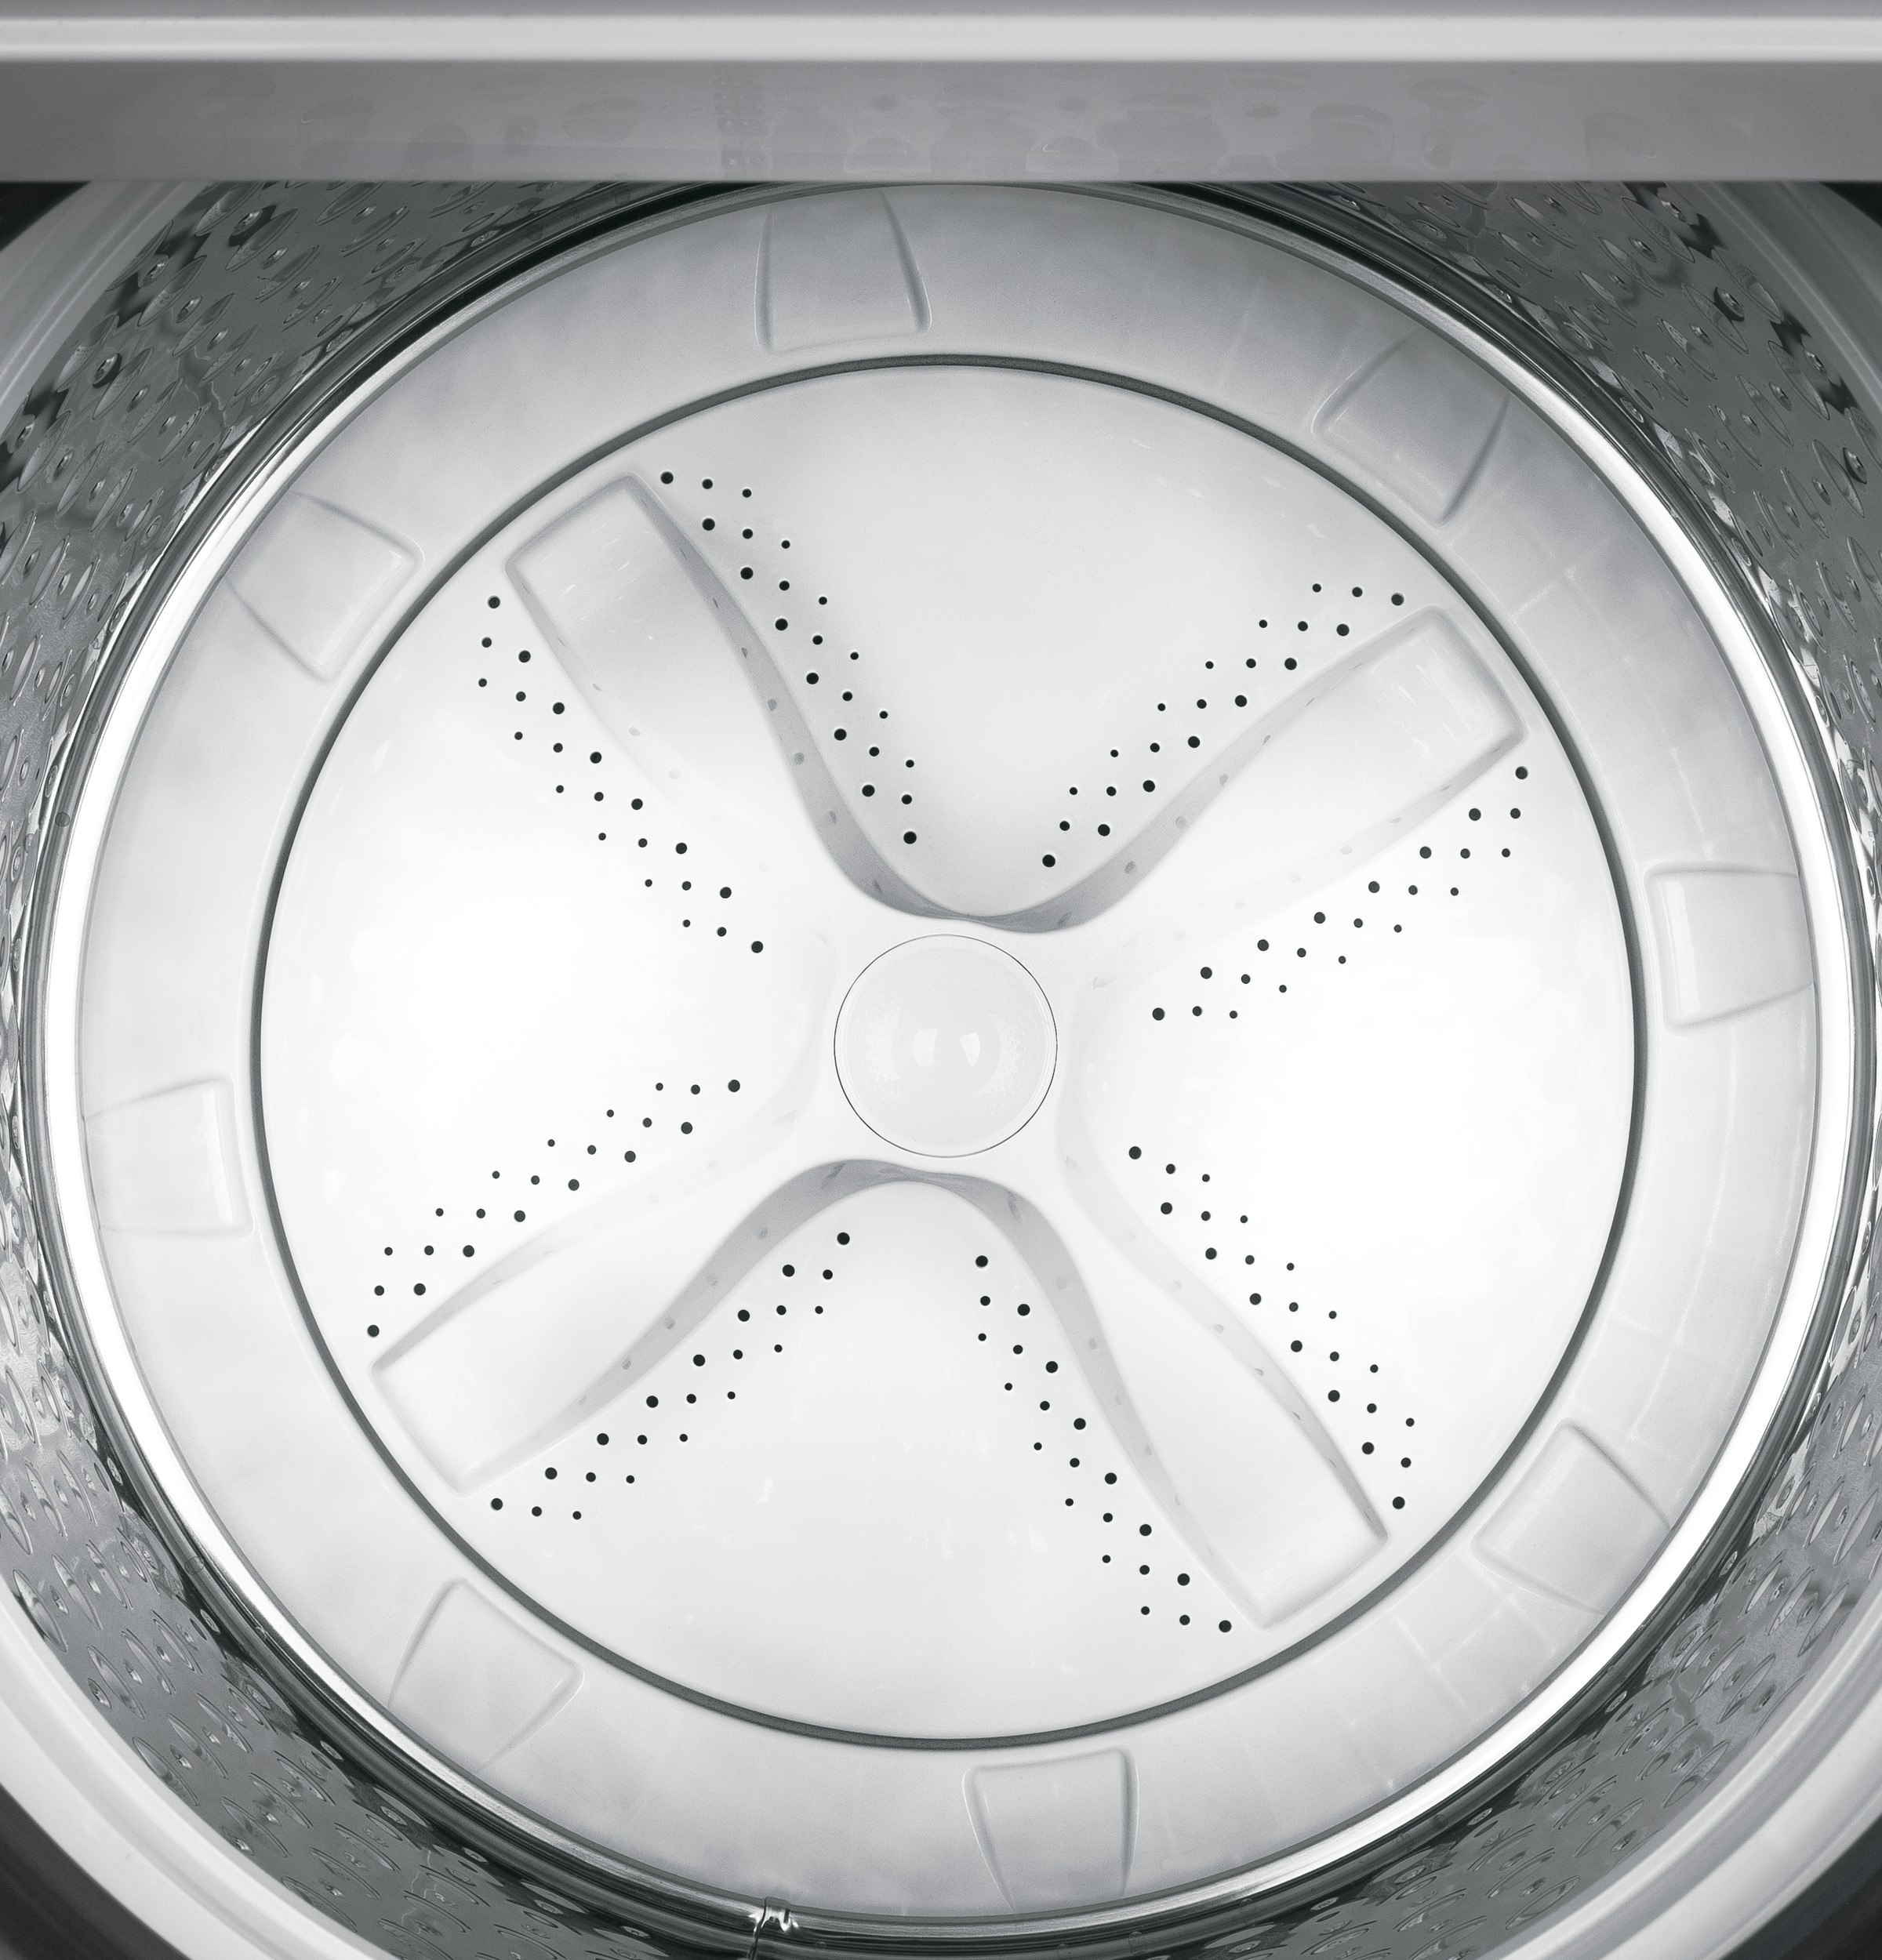 Model: GTW720BSNWS | GE GE® 4.8  cu. ft. Capacity Washer with Tide PODS™ Dispense